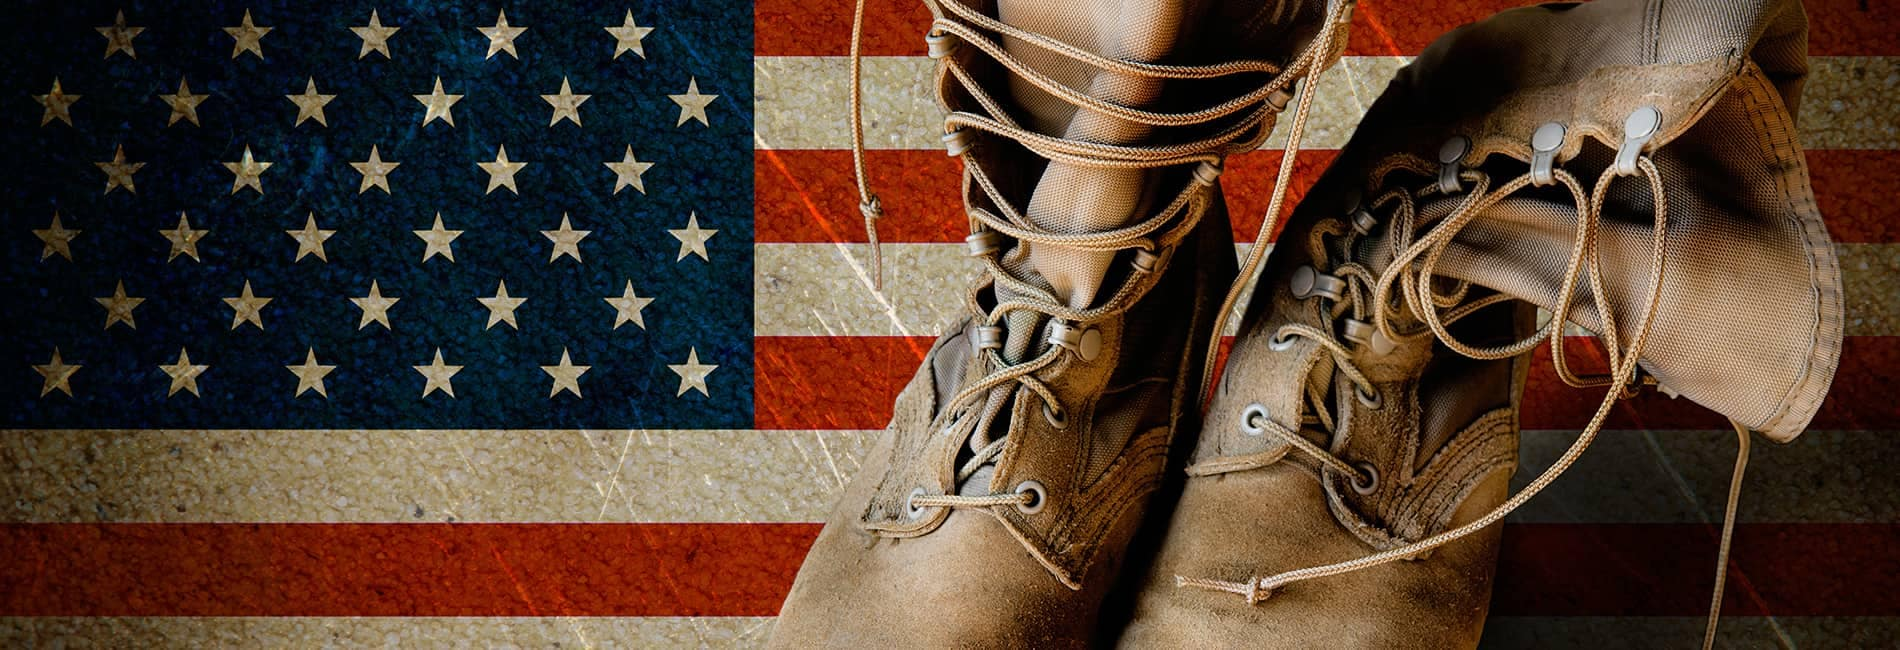 military boots in front of American flag